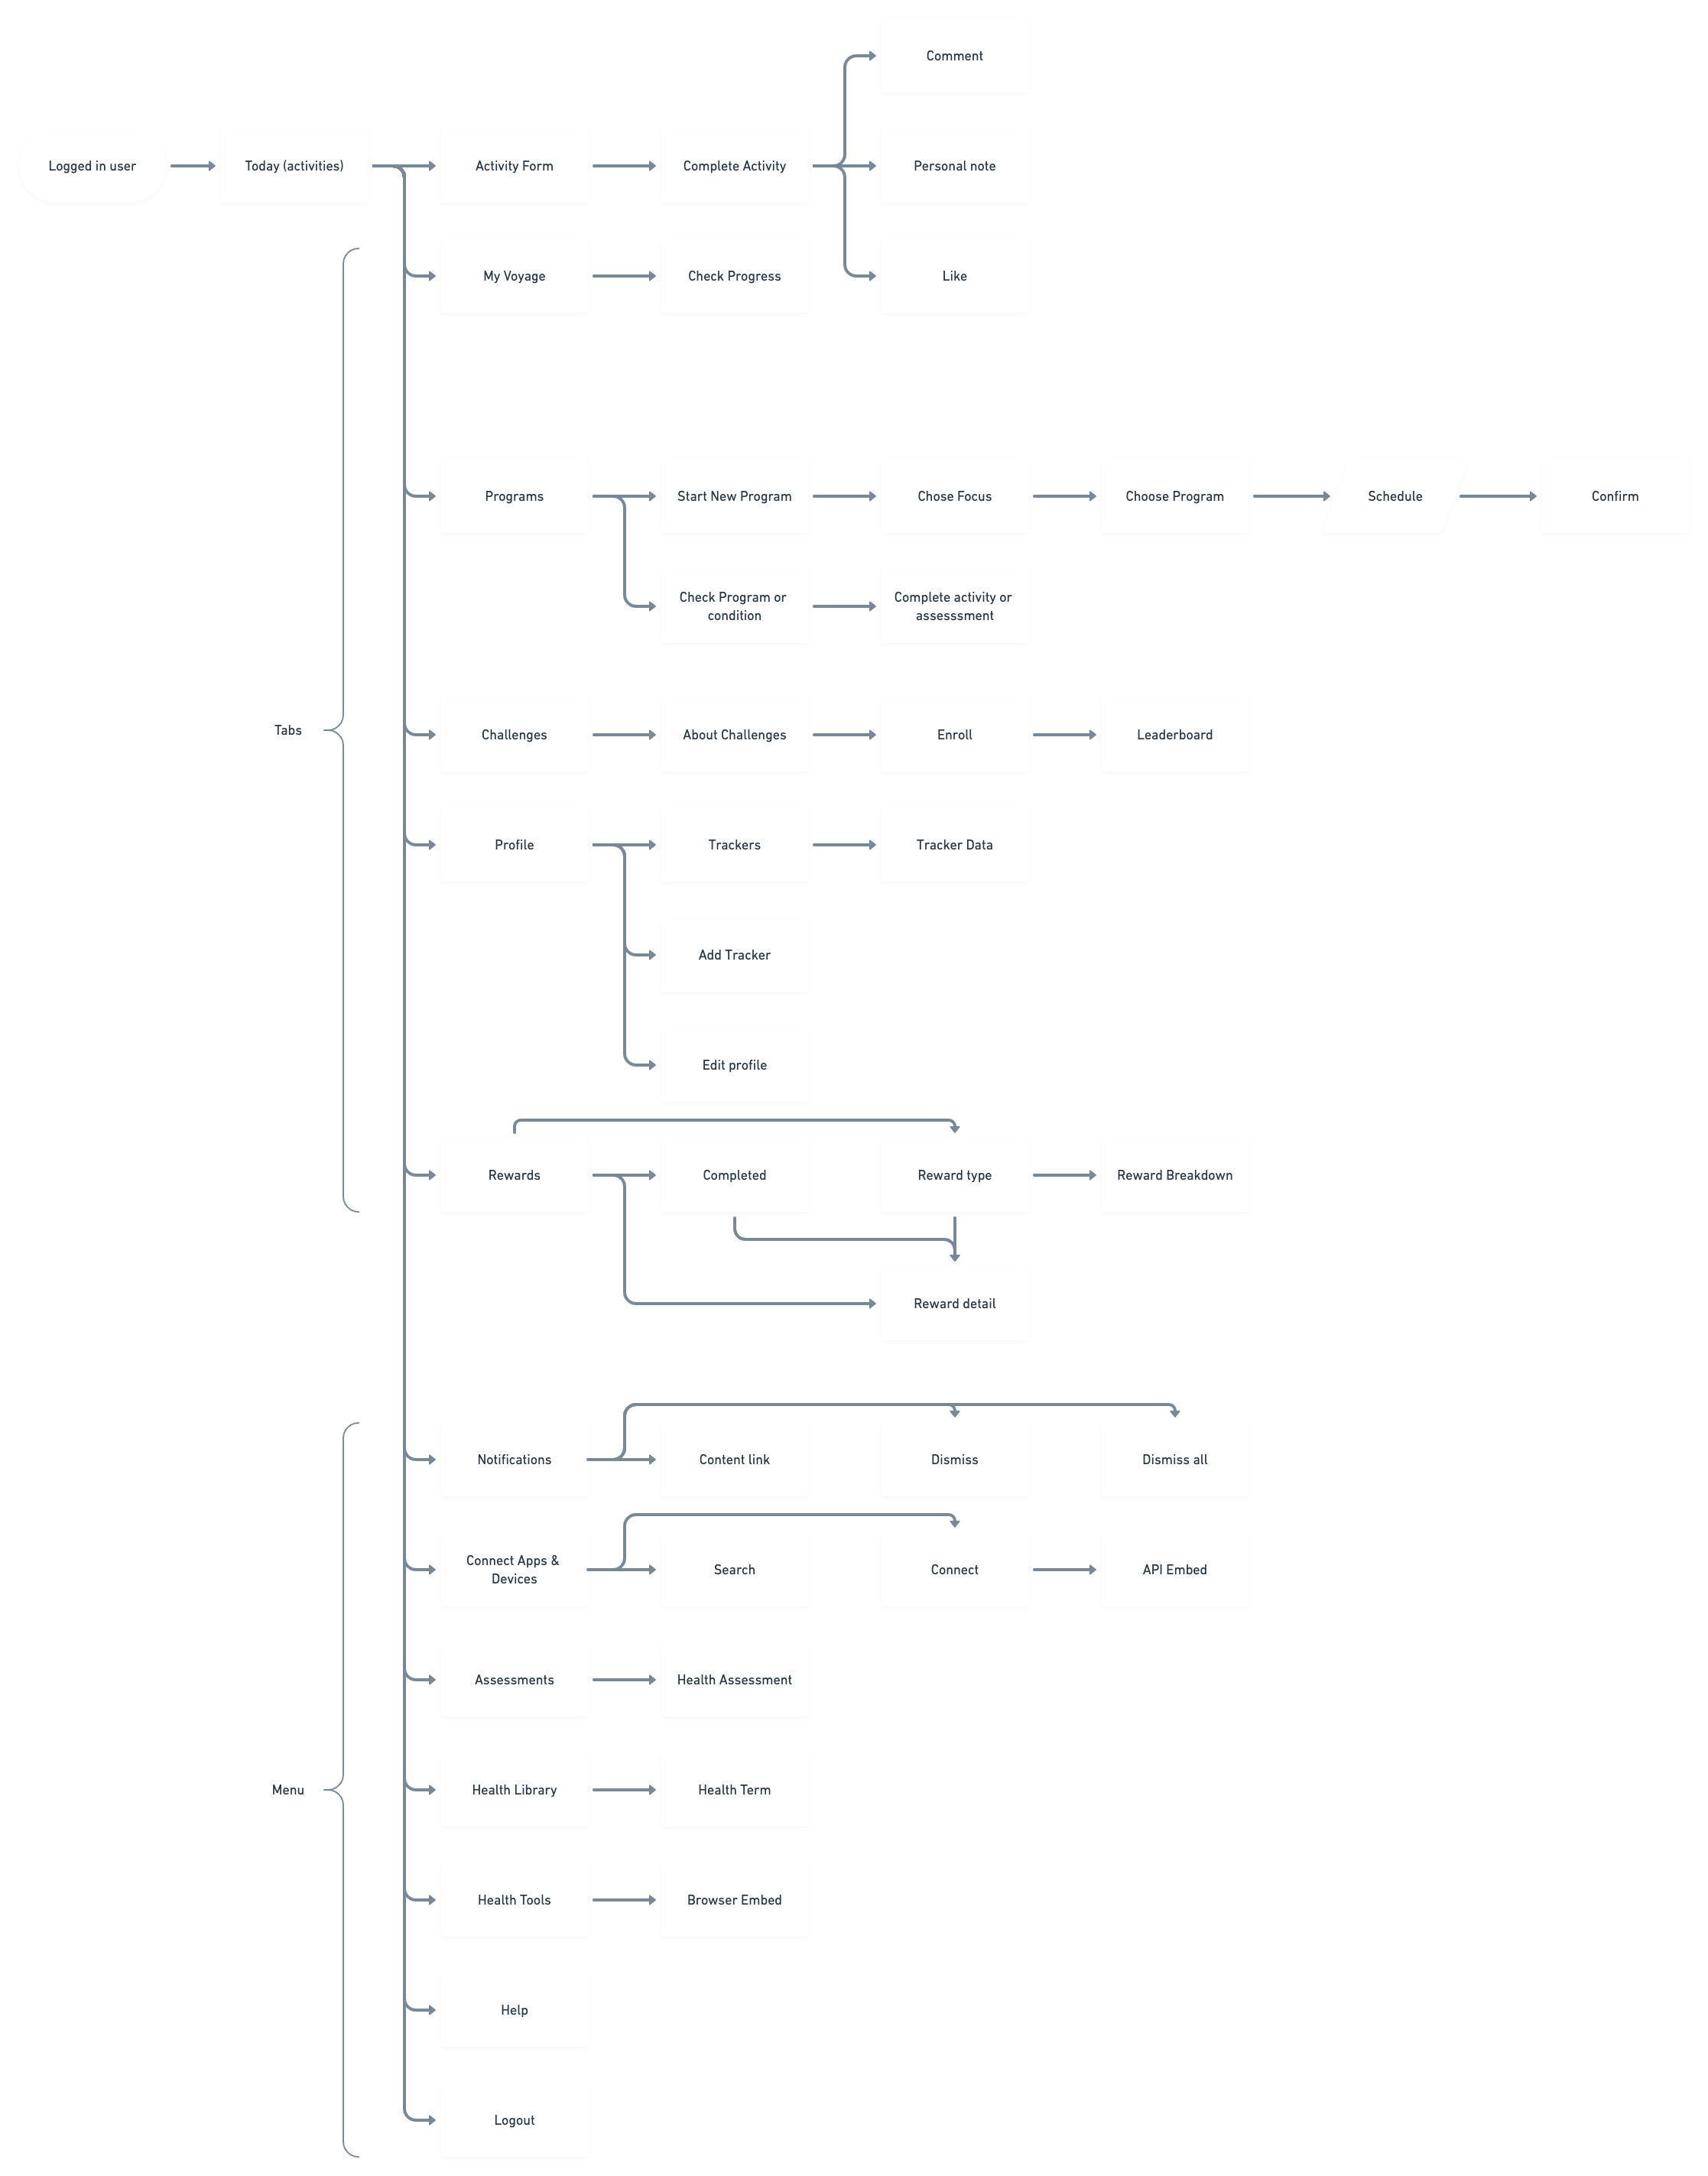 an overview of The Voyage's user flow